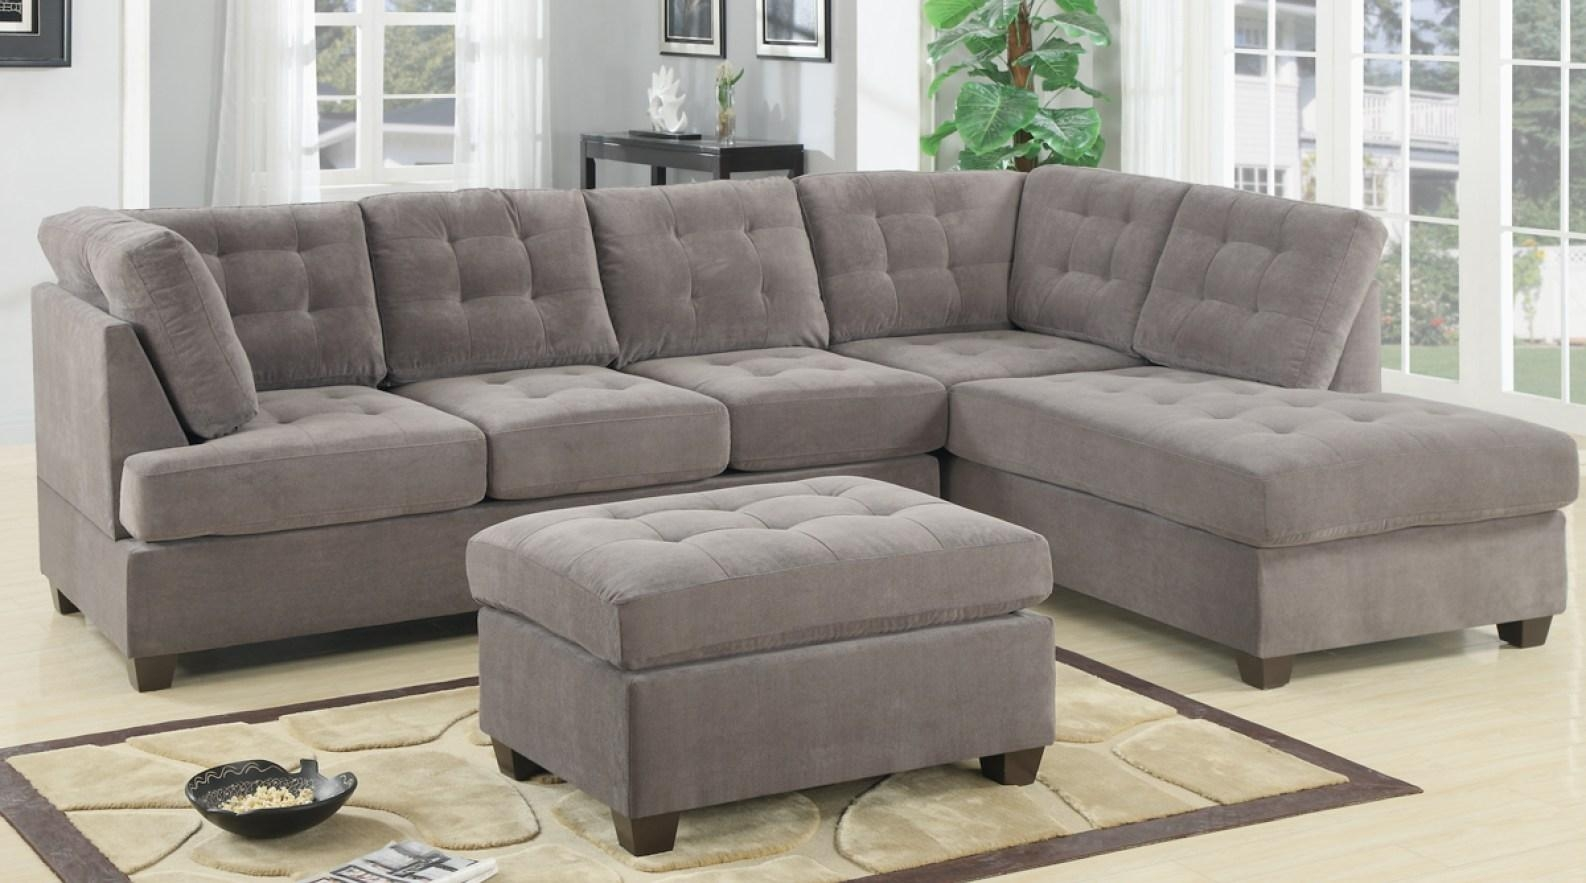 Horrifying Ideas Sofasdesign Epic Sectional Sofa Dimensions Pertaining To Sectional Small Spaces (Image 12 of 20)